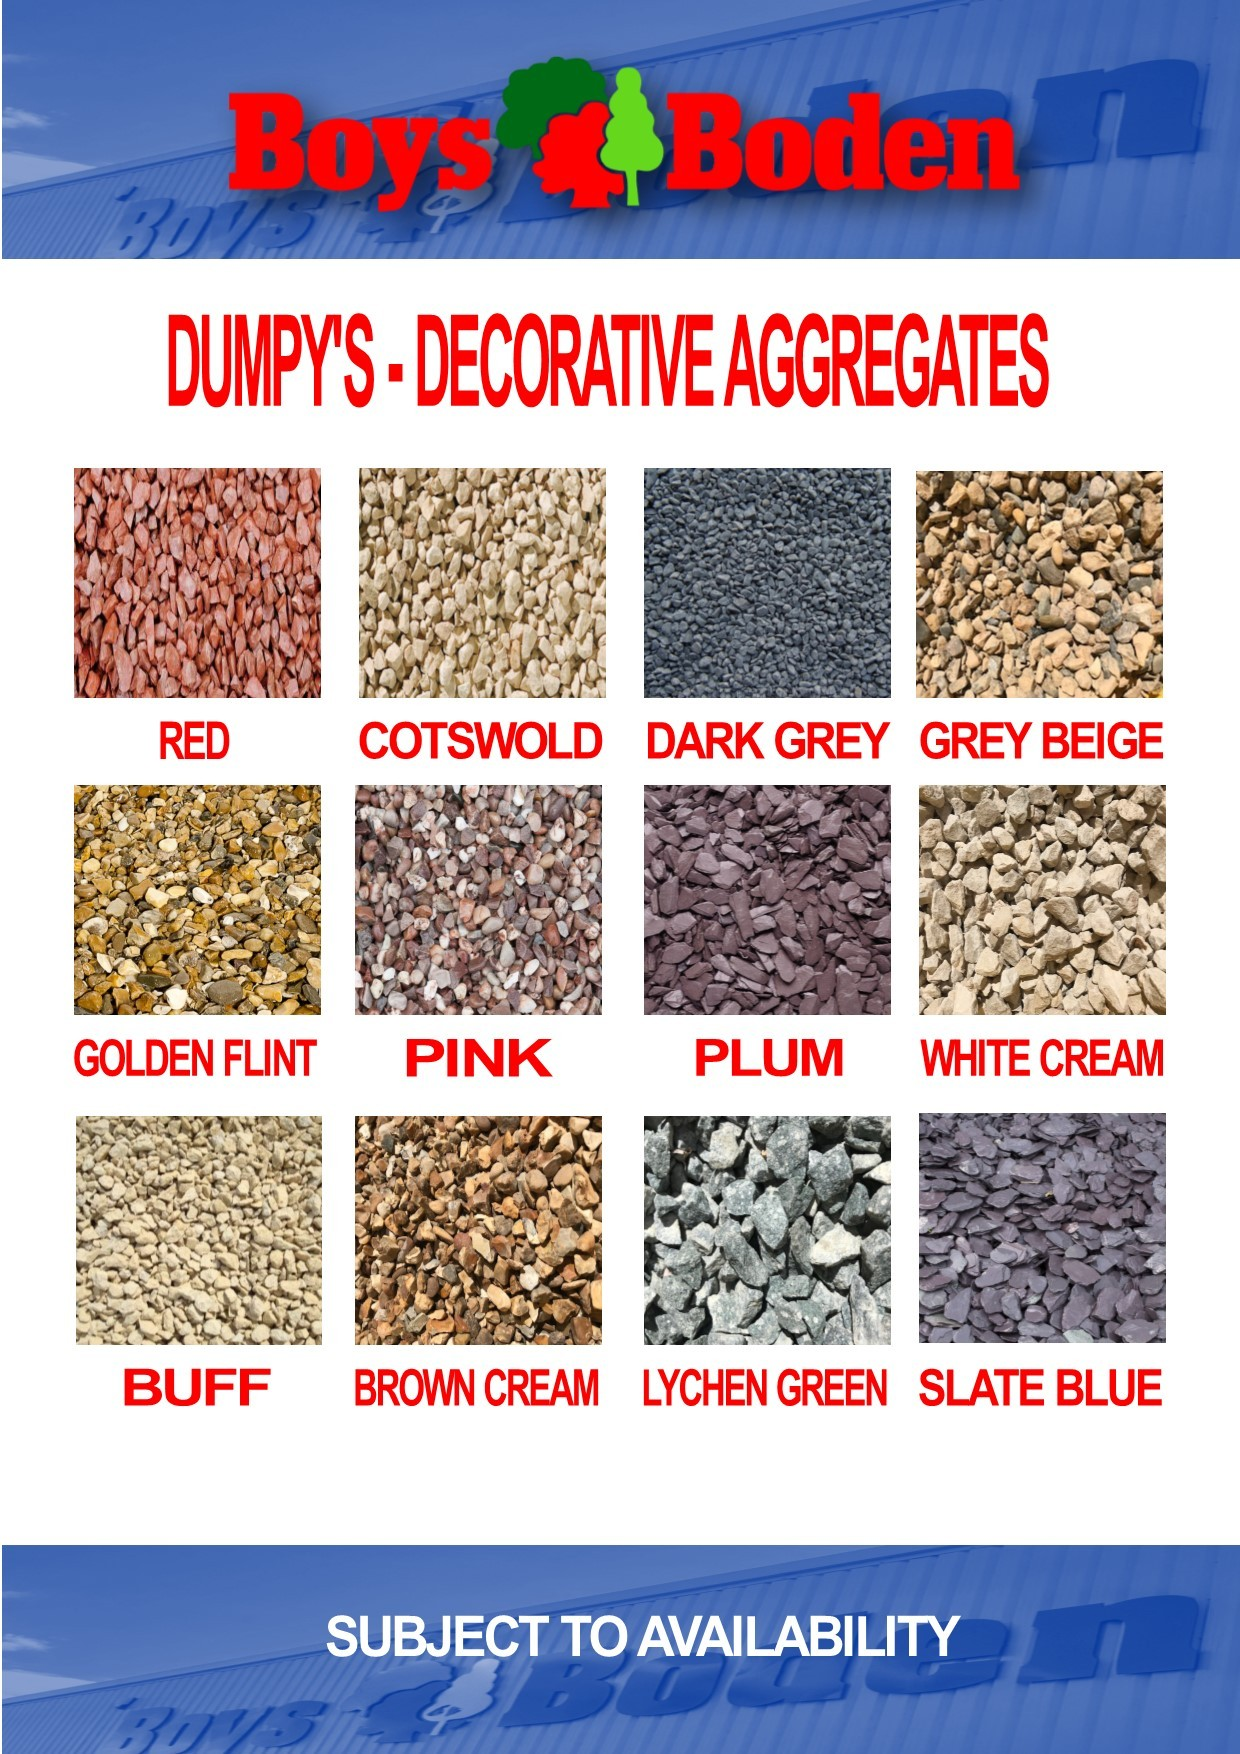 DUMPY BAG -Lychen Green Chippings Decorative Aggregate